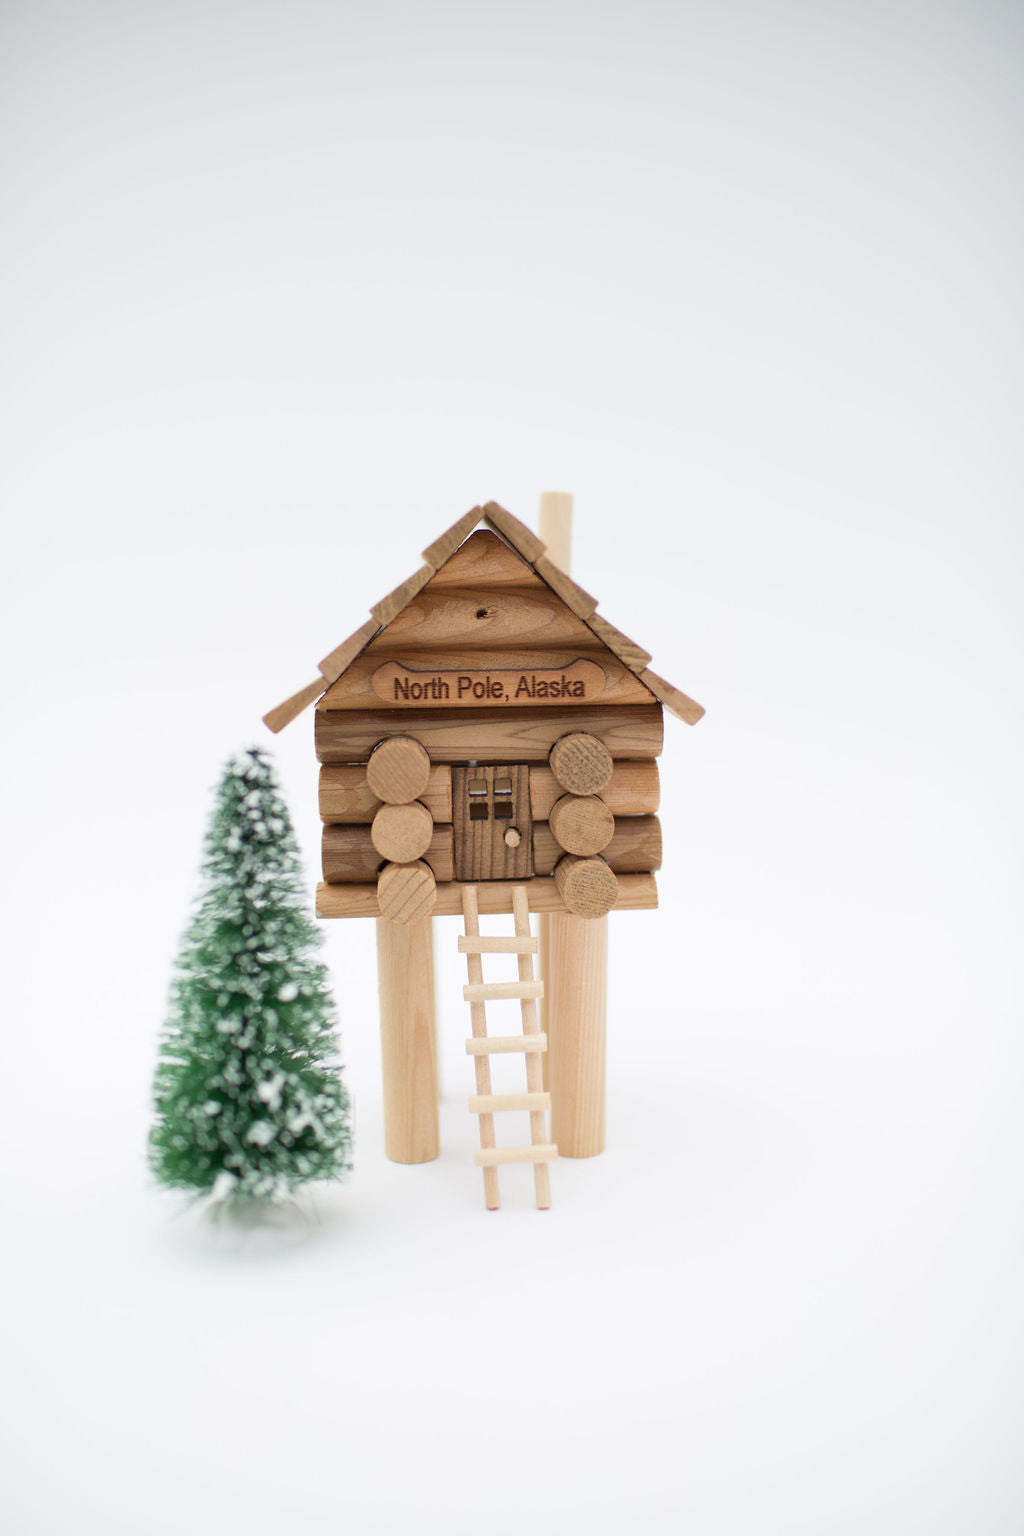 Build this miniature Alaska Cache Cabin with ladder made from real logs and available at Santa's Letters and Gifts-North Pole, Alaska